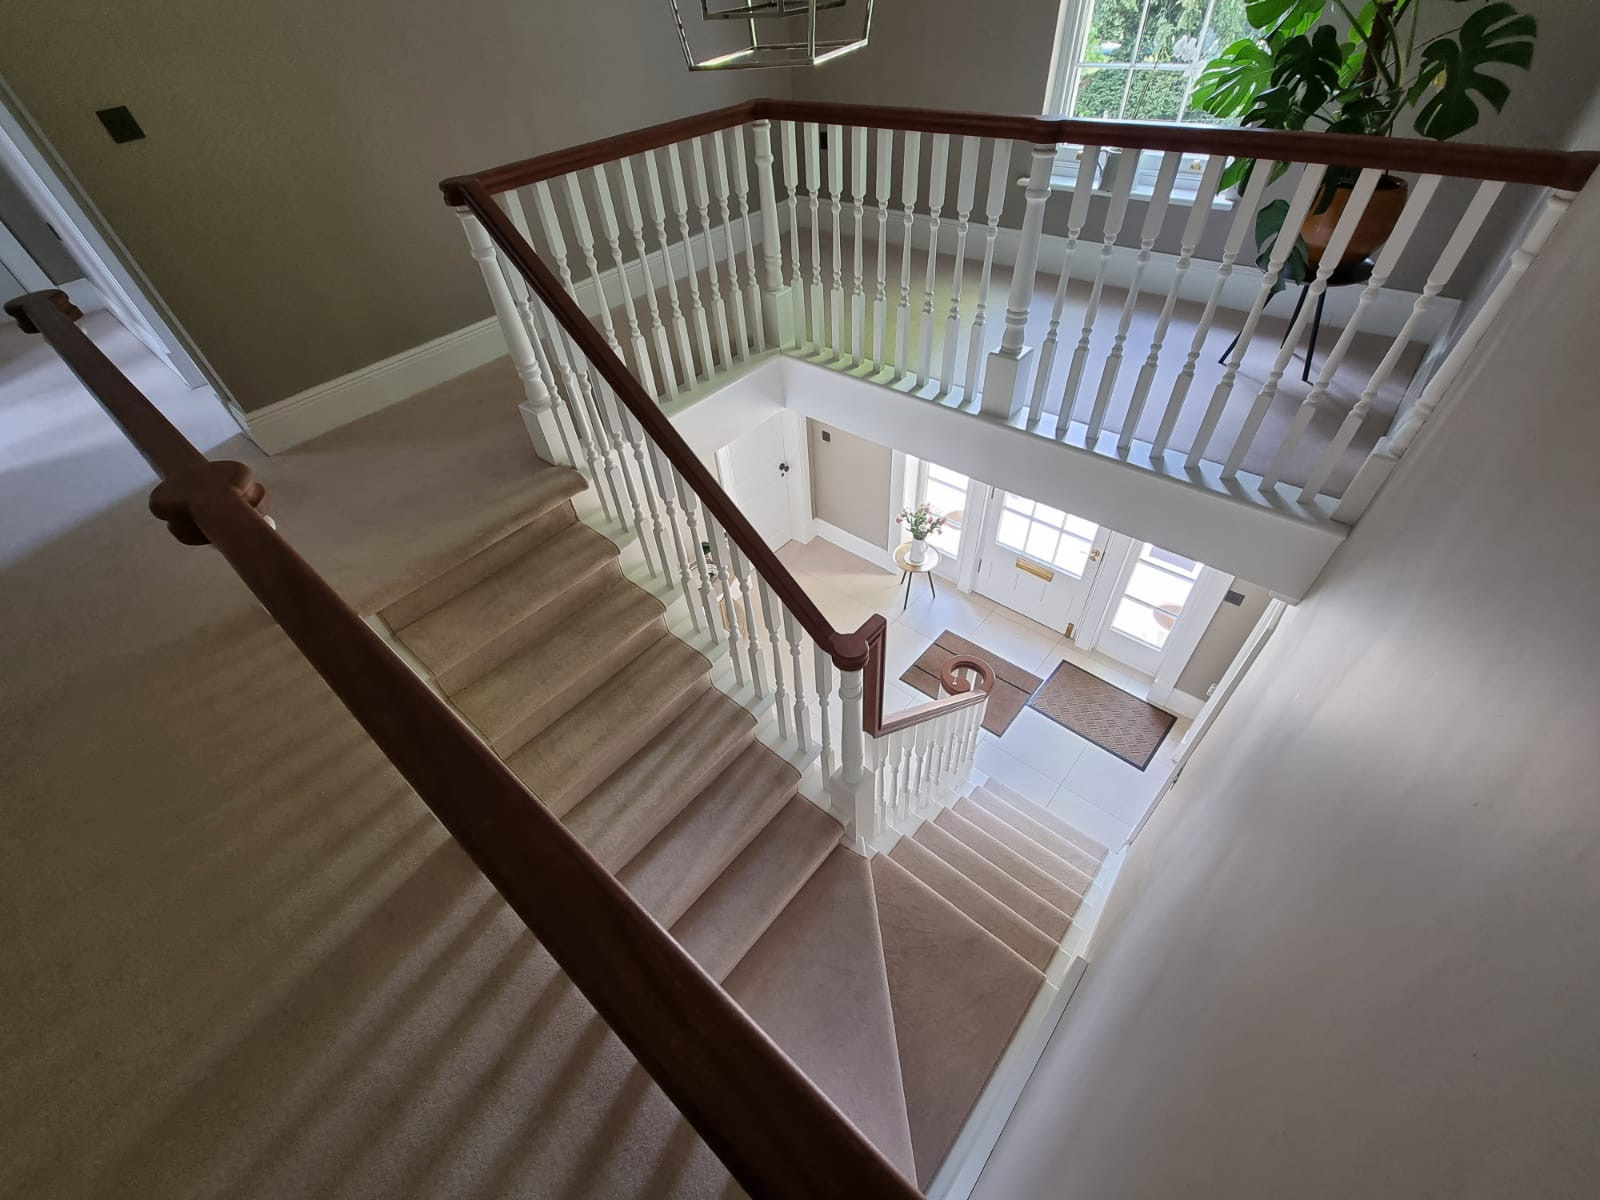 Traditional painted white staircase with wood handrail